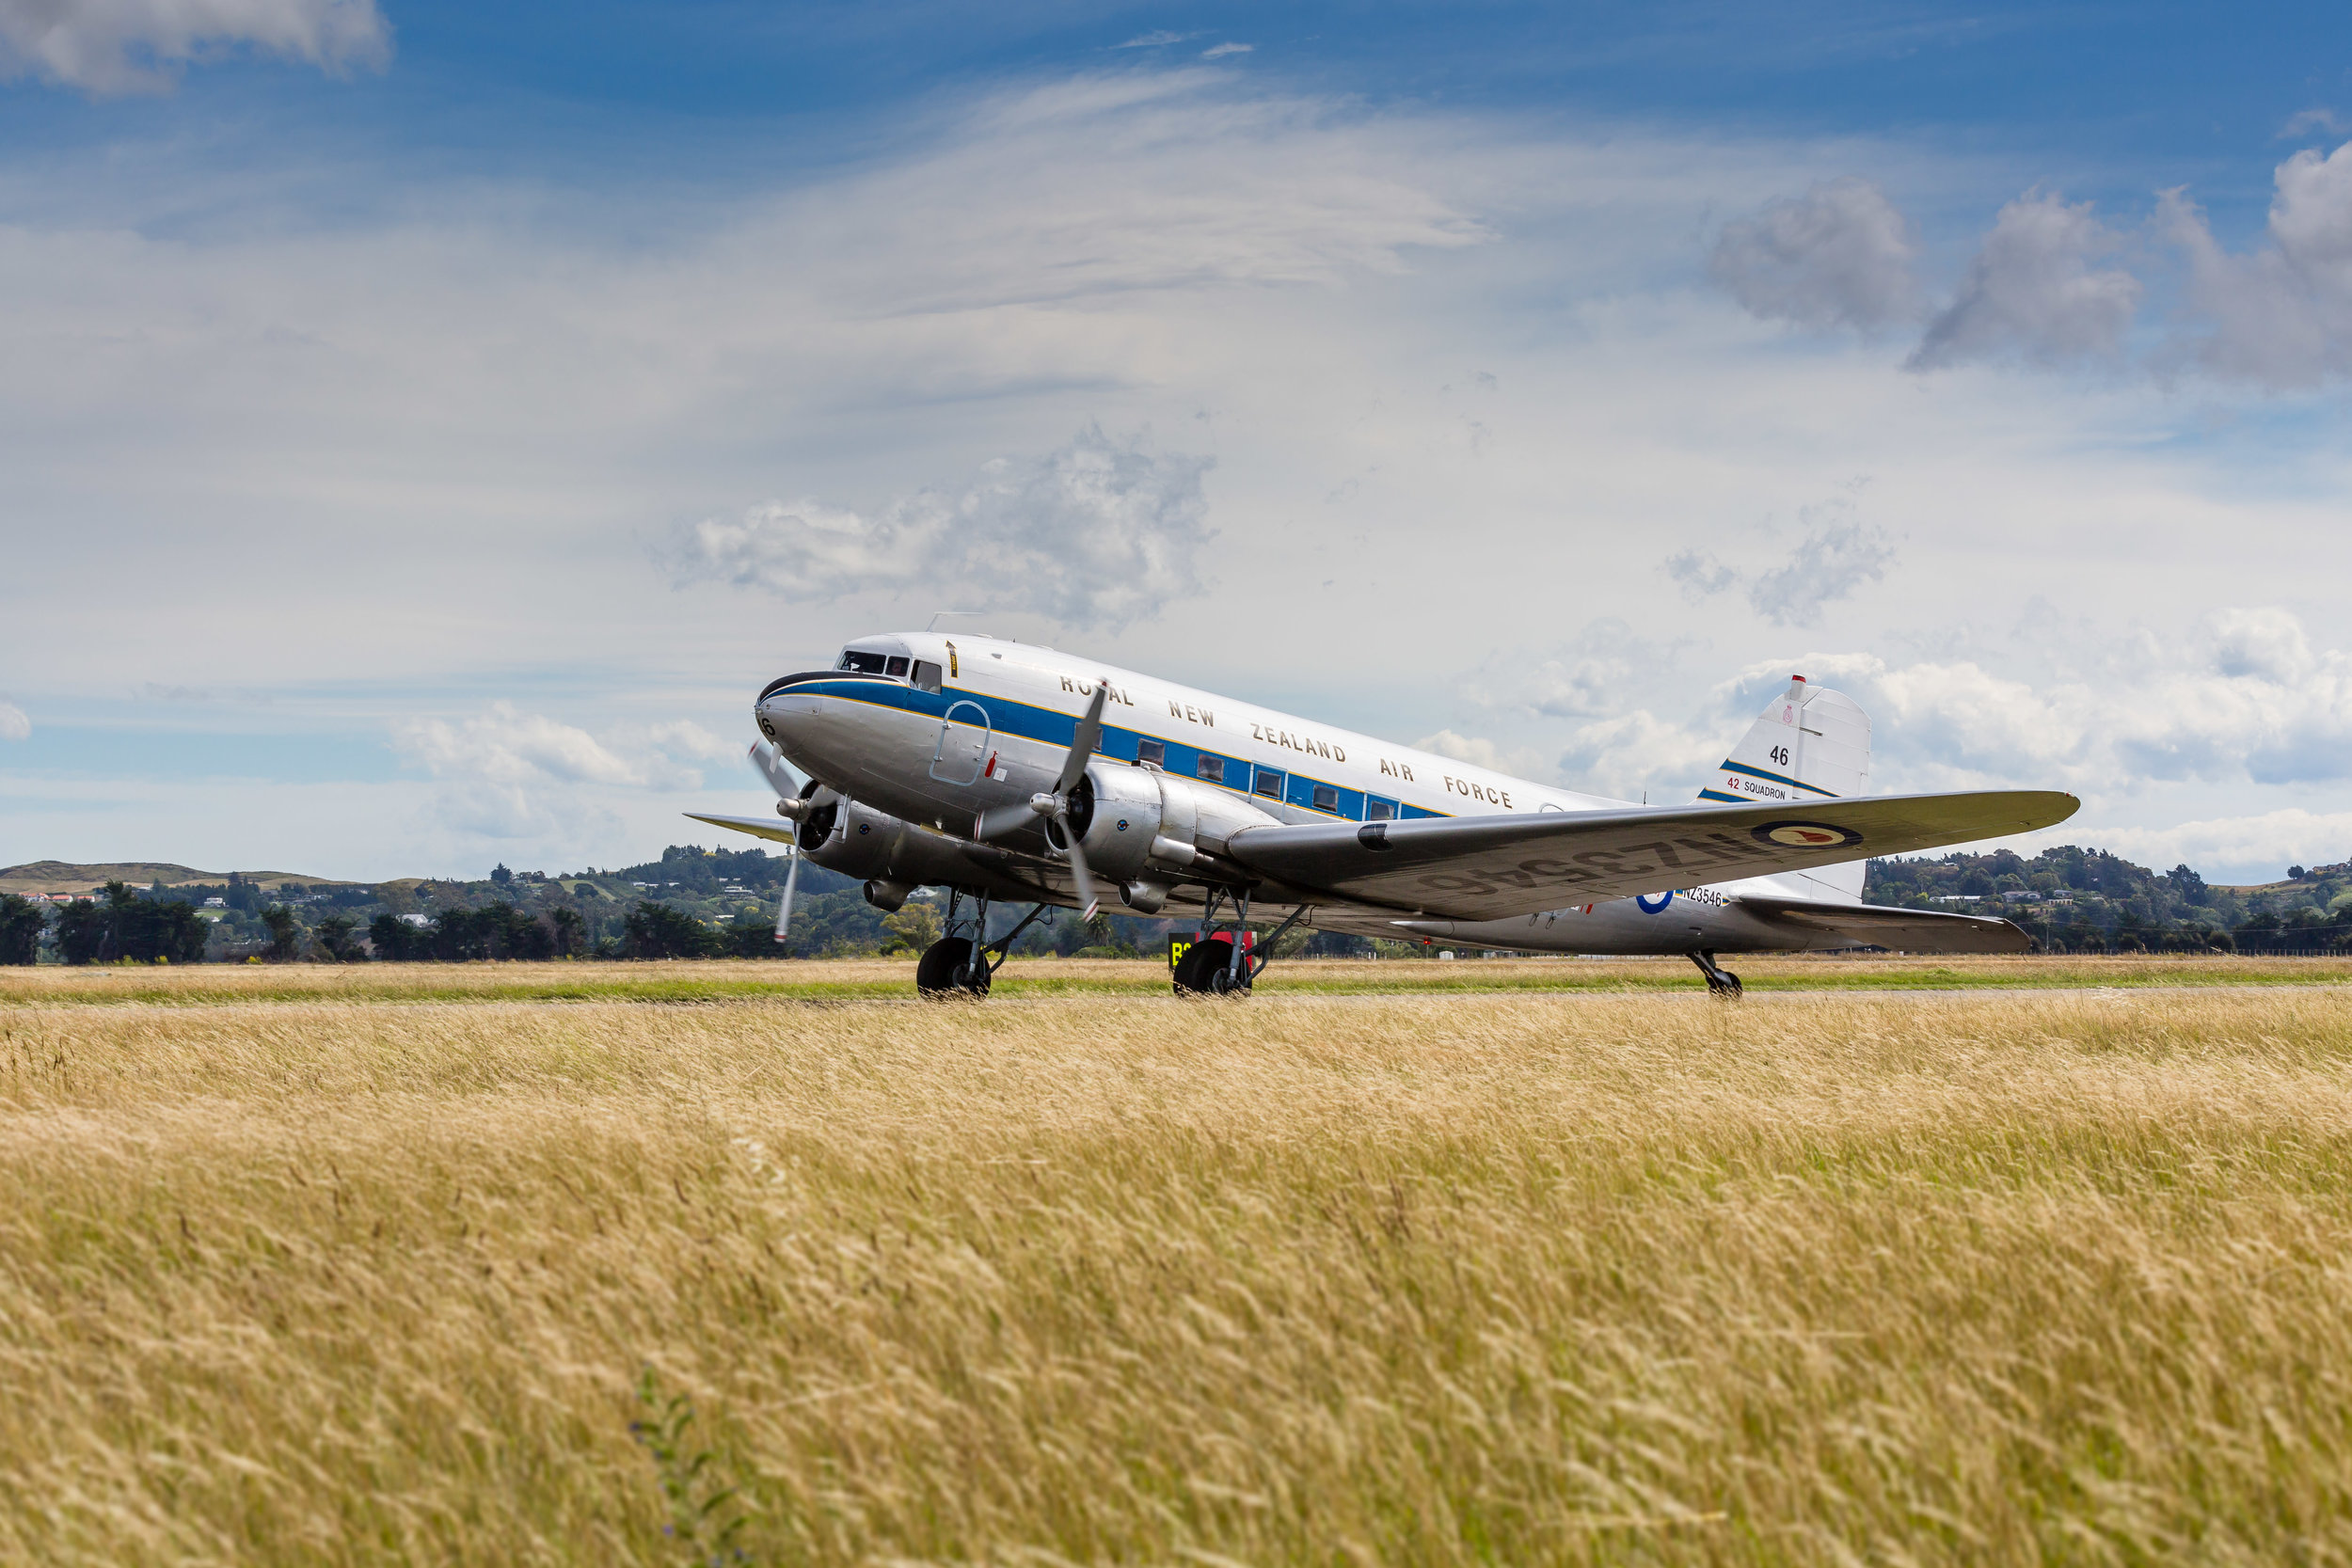 DC3 Aircraft taxiing from the runway